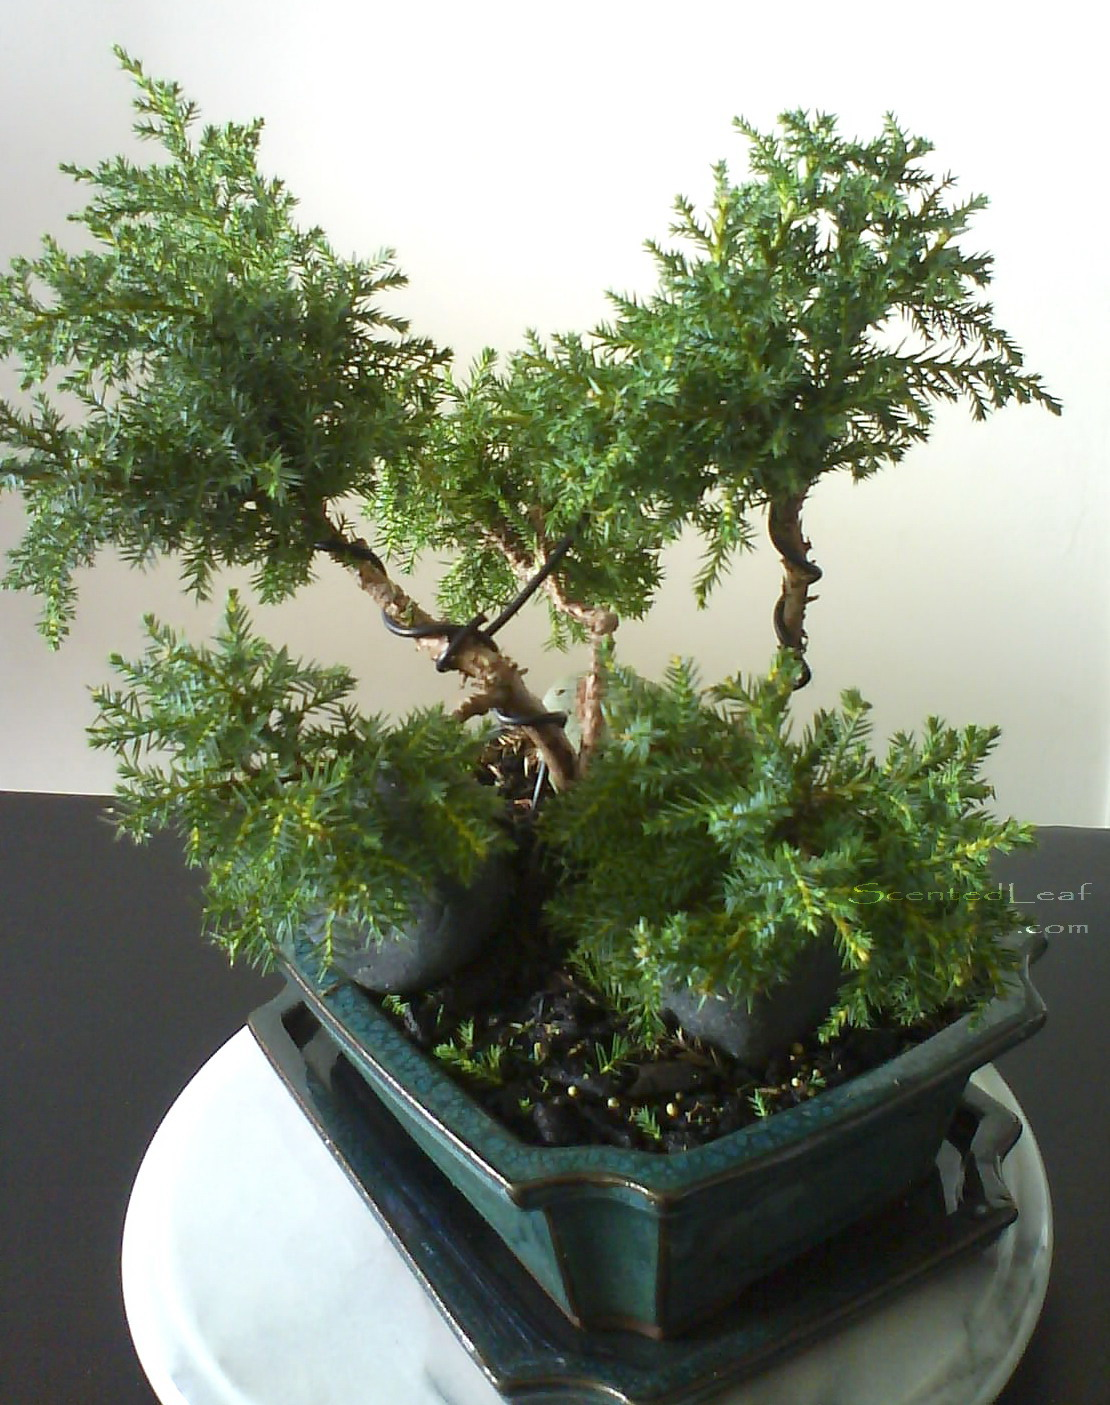 Scented Leaf Juniperus Trees